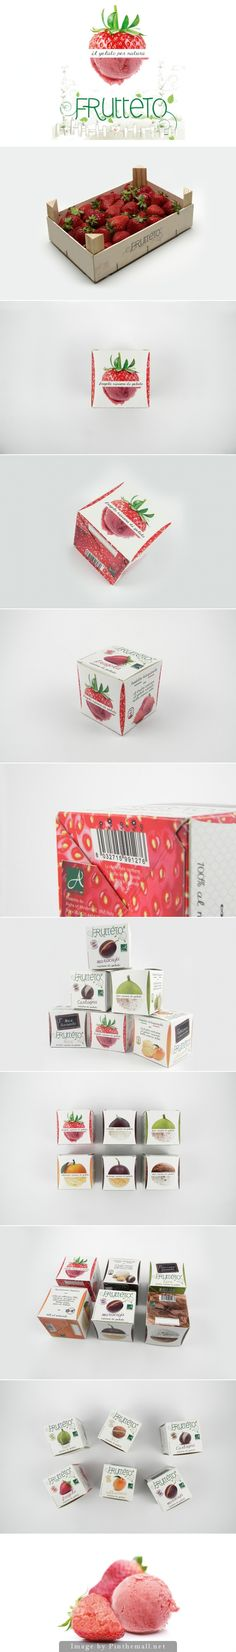 Frutteto Packaging by BasileADV